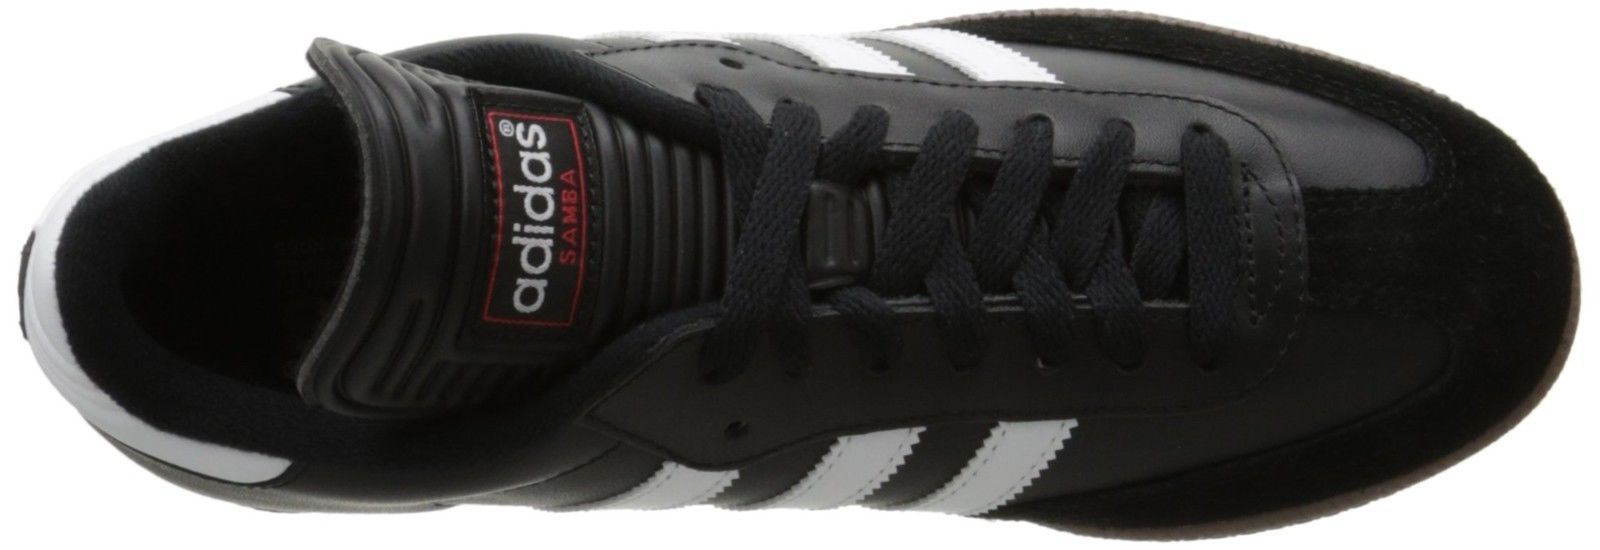 finest selection 89215 b9034 ... adidas Men s Samba Classic Soccer Shoe,Black Running White,9.5 ...